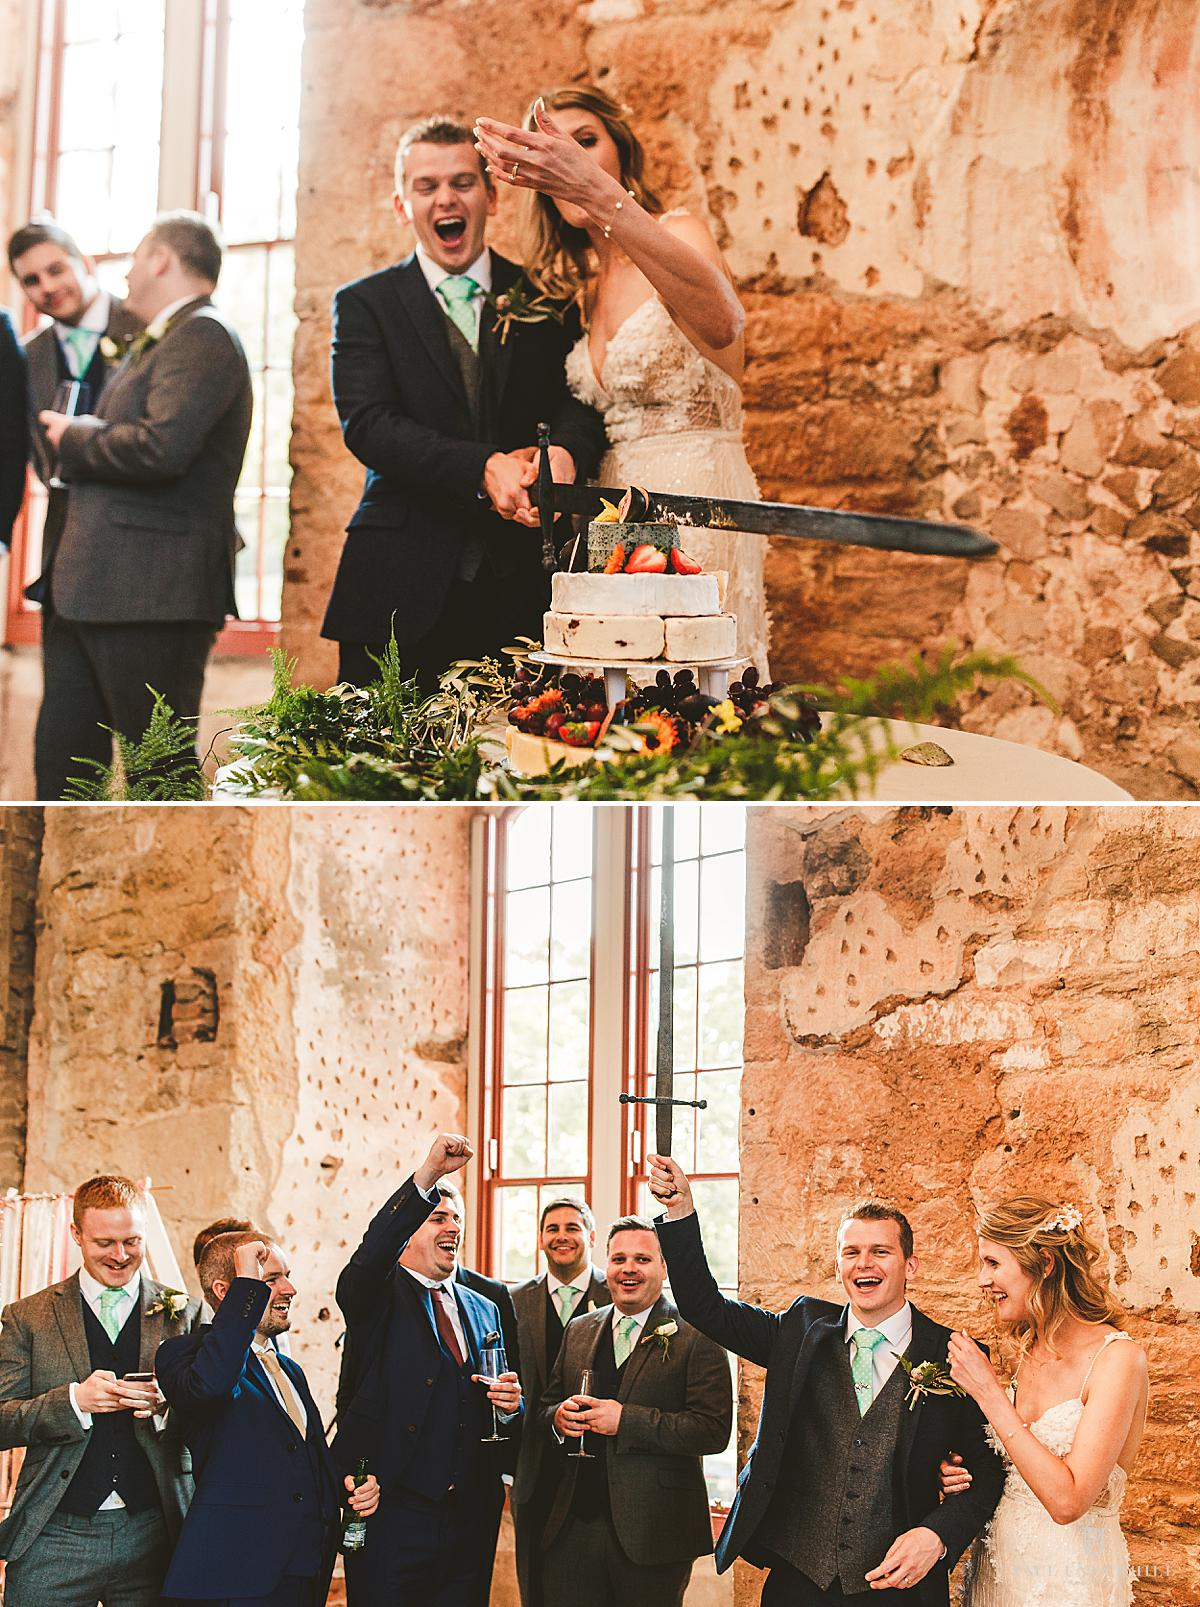 Cake cutting Lulworth Castle